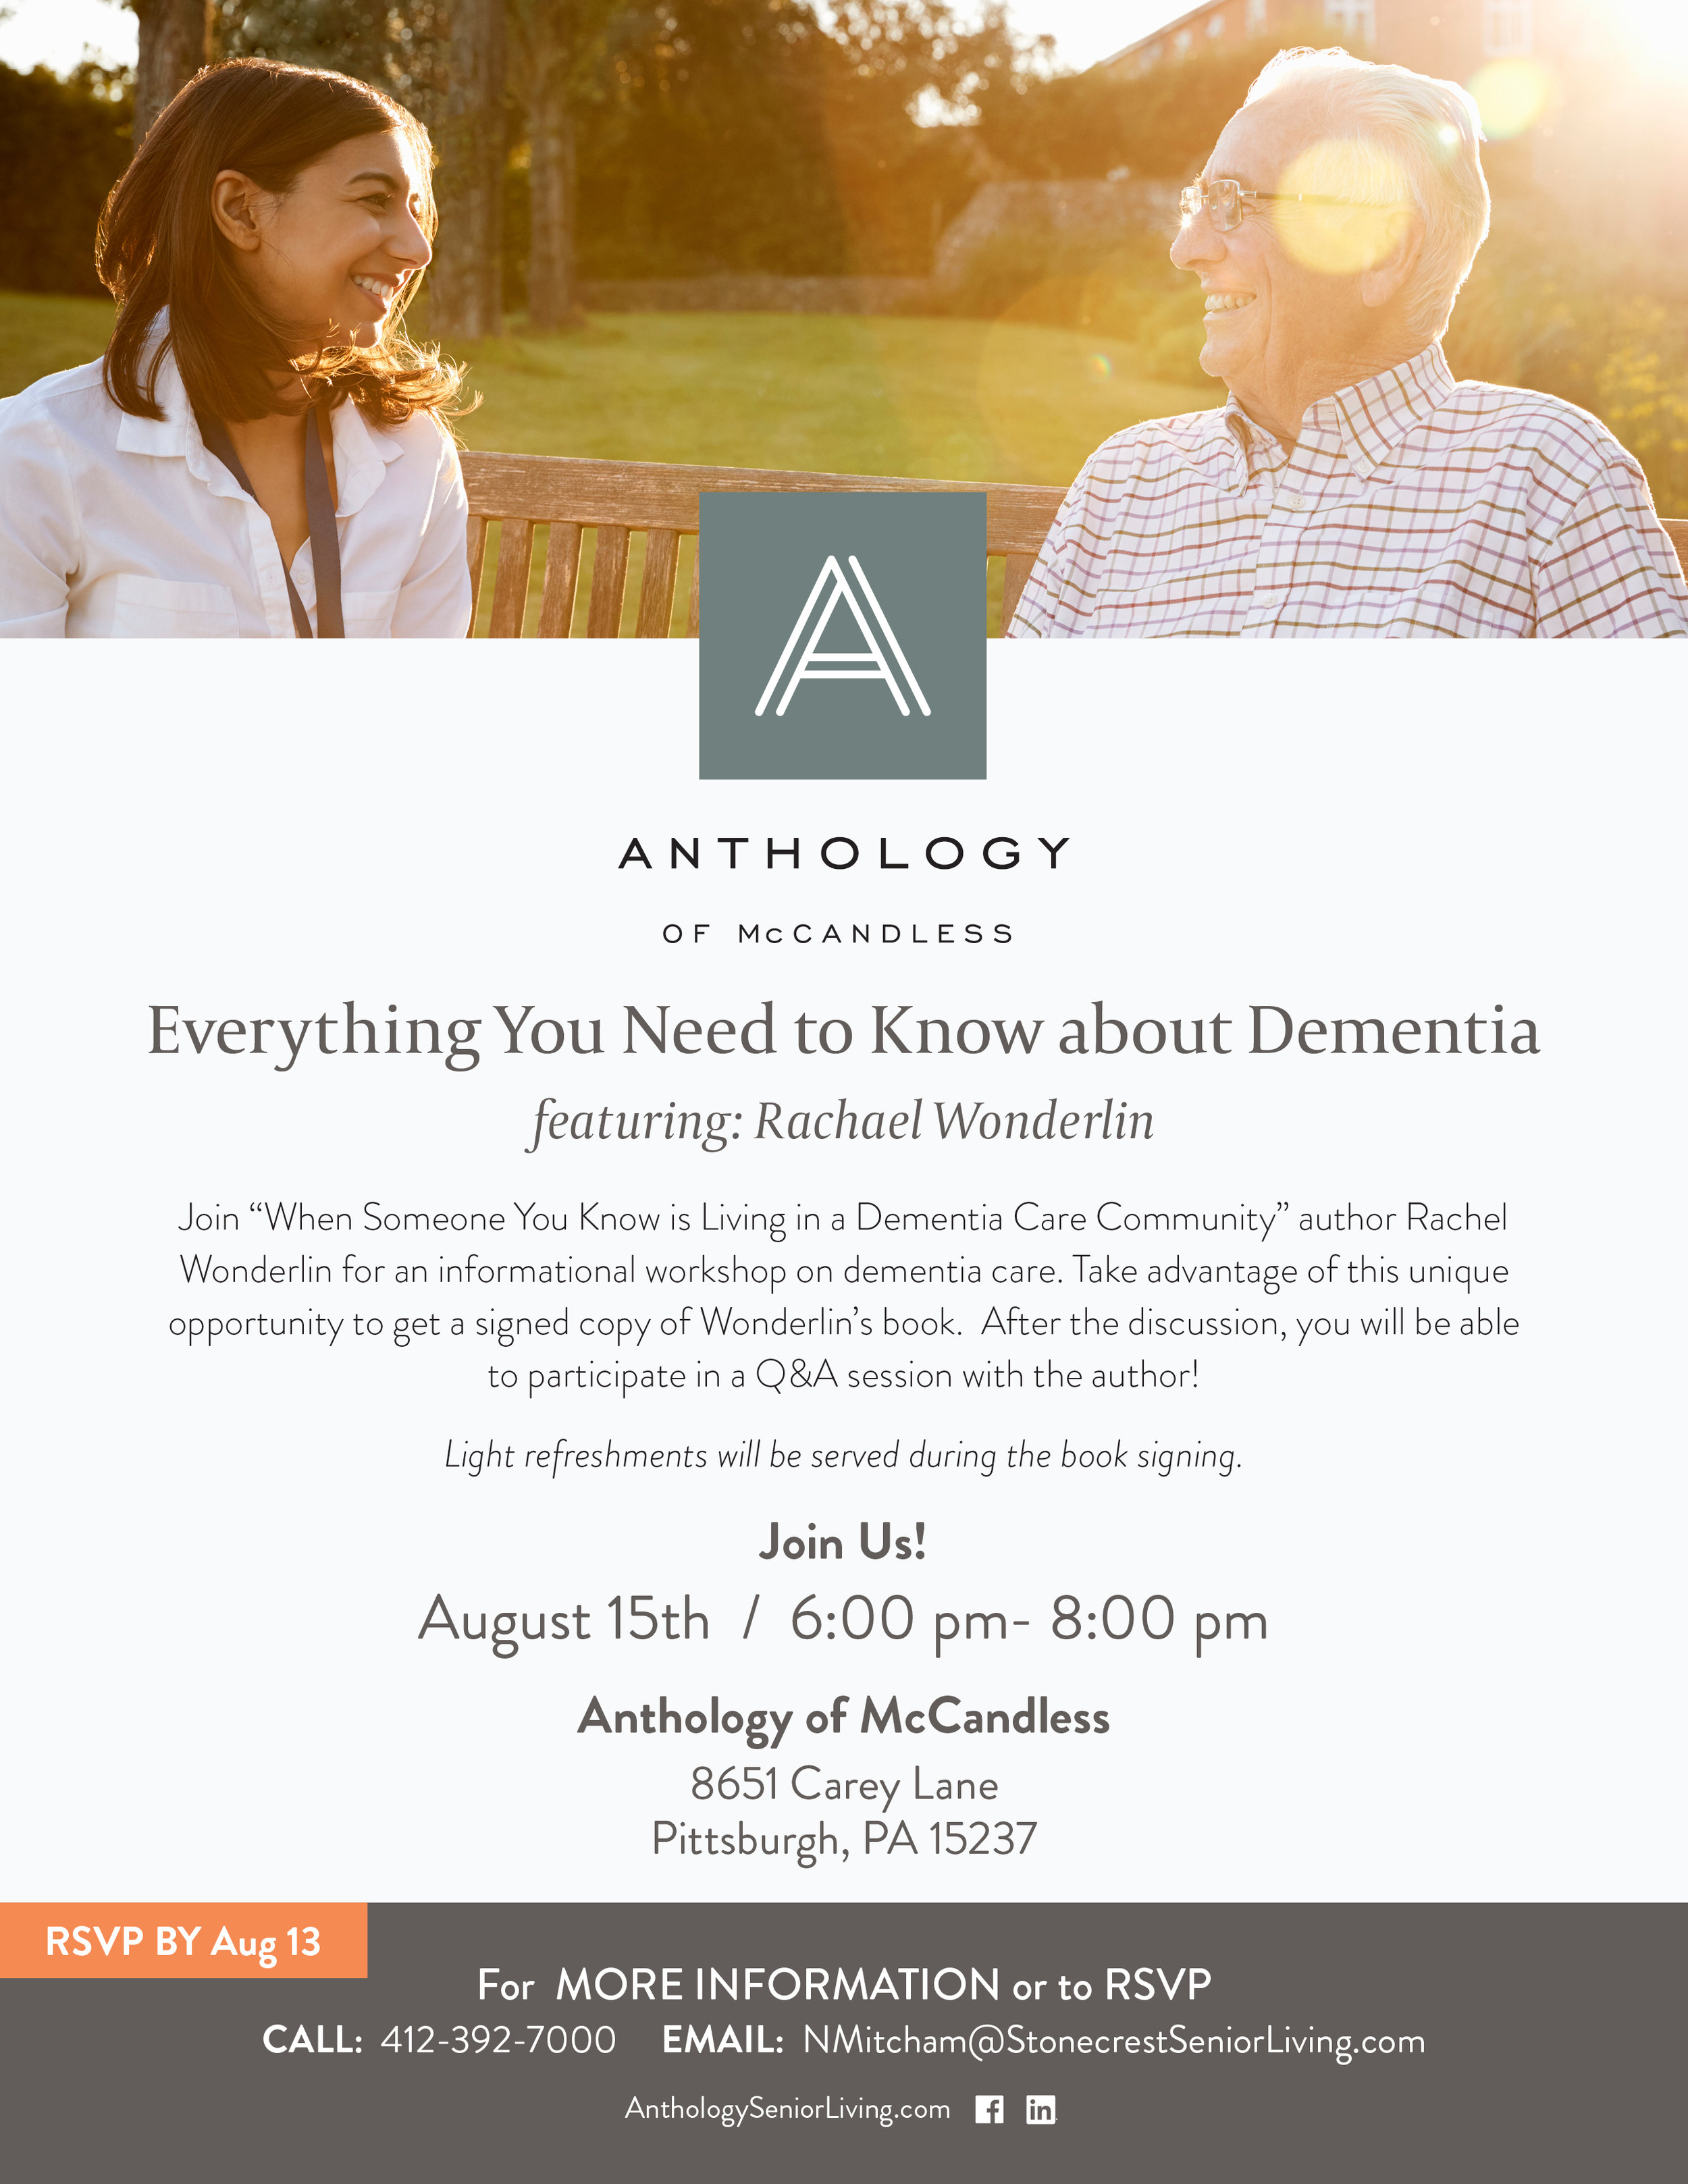 Anthology-McCandless-Everything you need to know about dementia.jpg